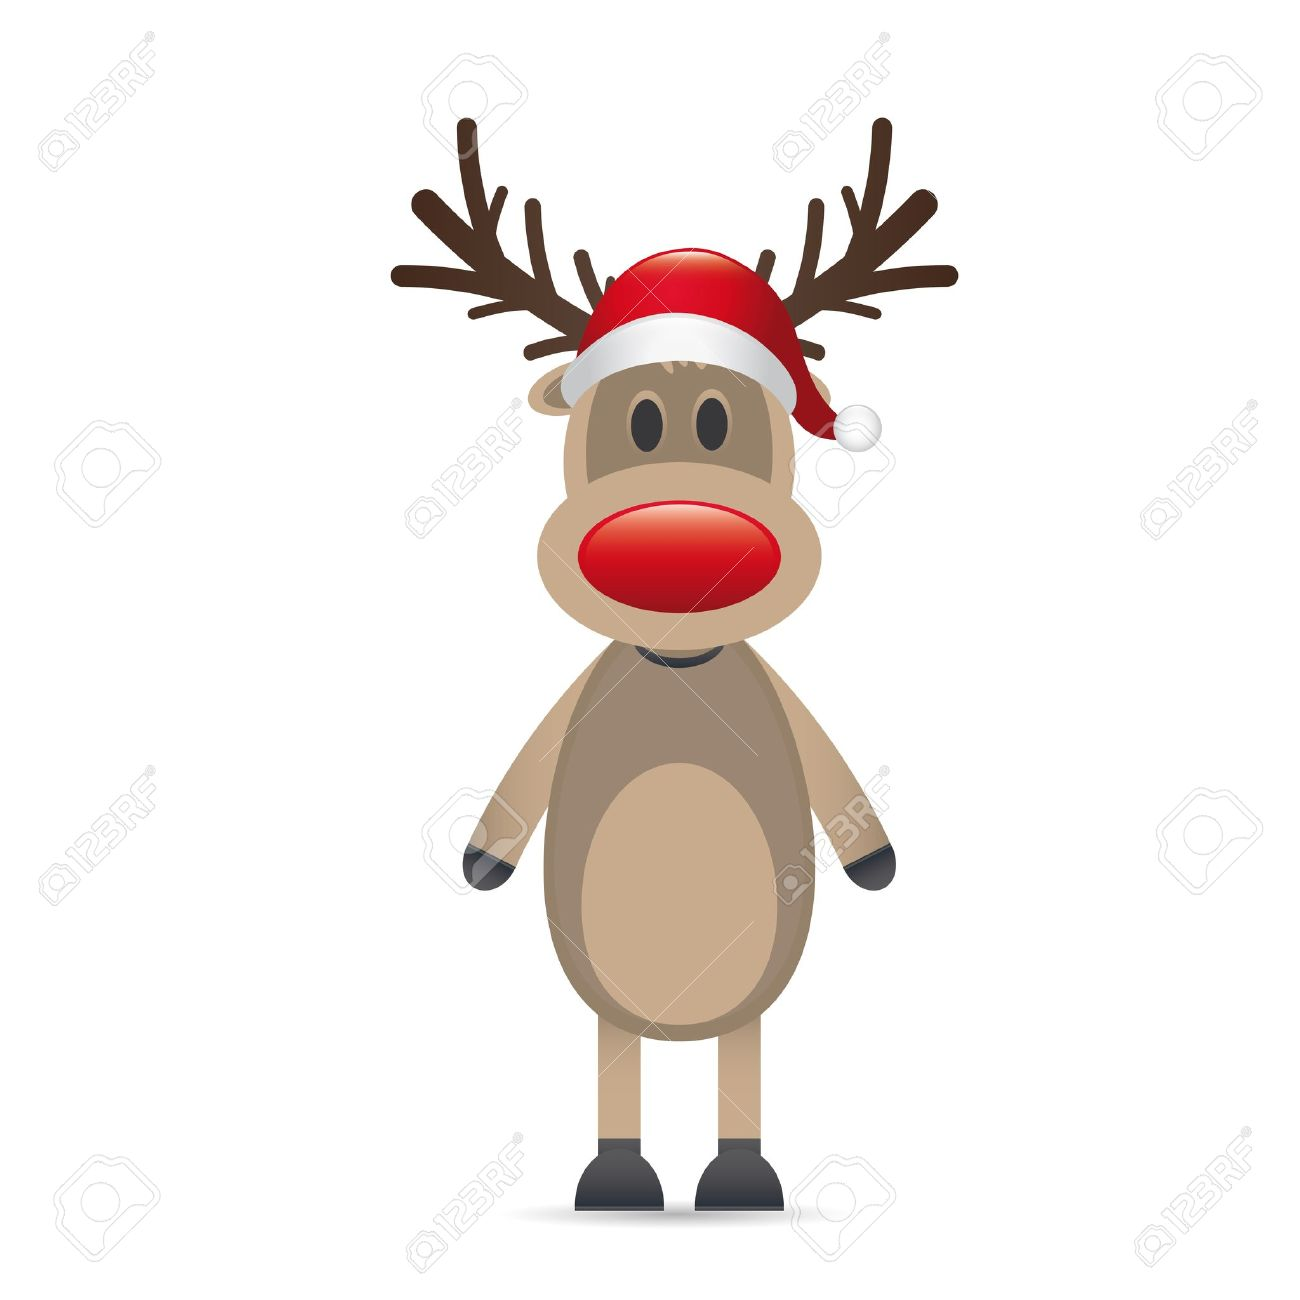 rudolph reindeer red nose santa claus hat Stock Photo - 15274650